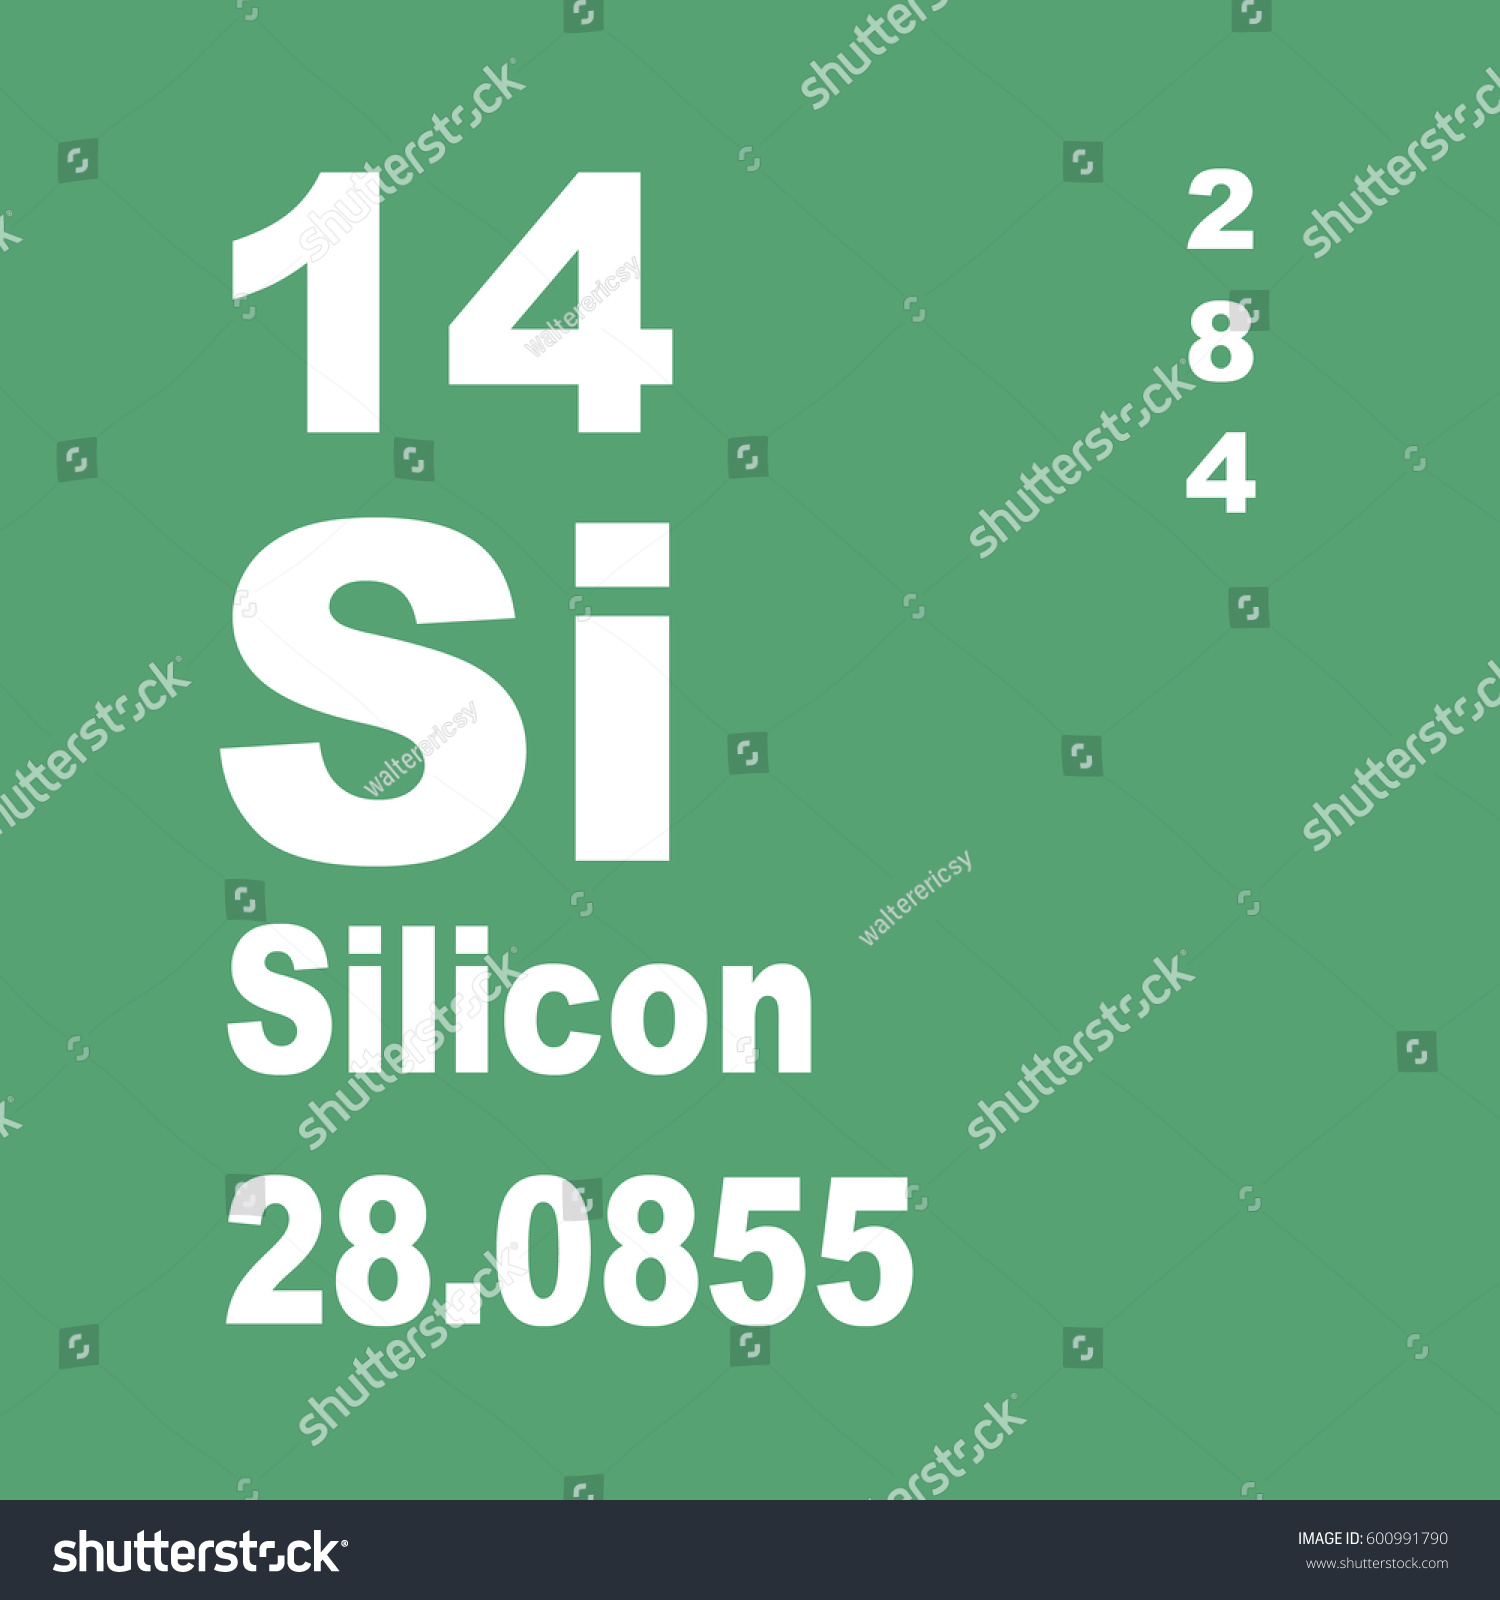 Silicon periodic table elements stock illustration 600991790 silicon periodic table of elements gamestrikefo Gallery